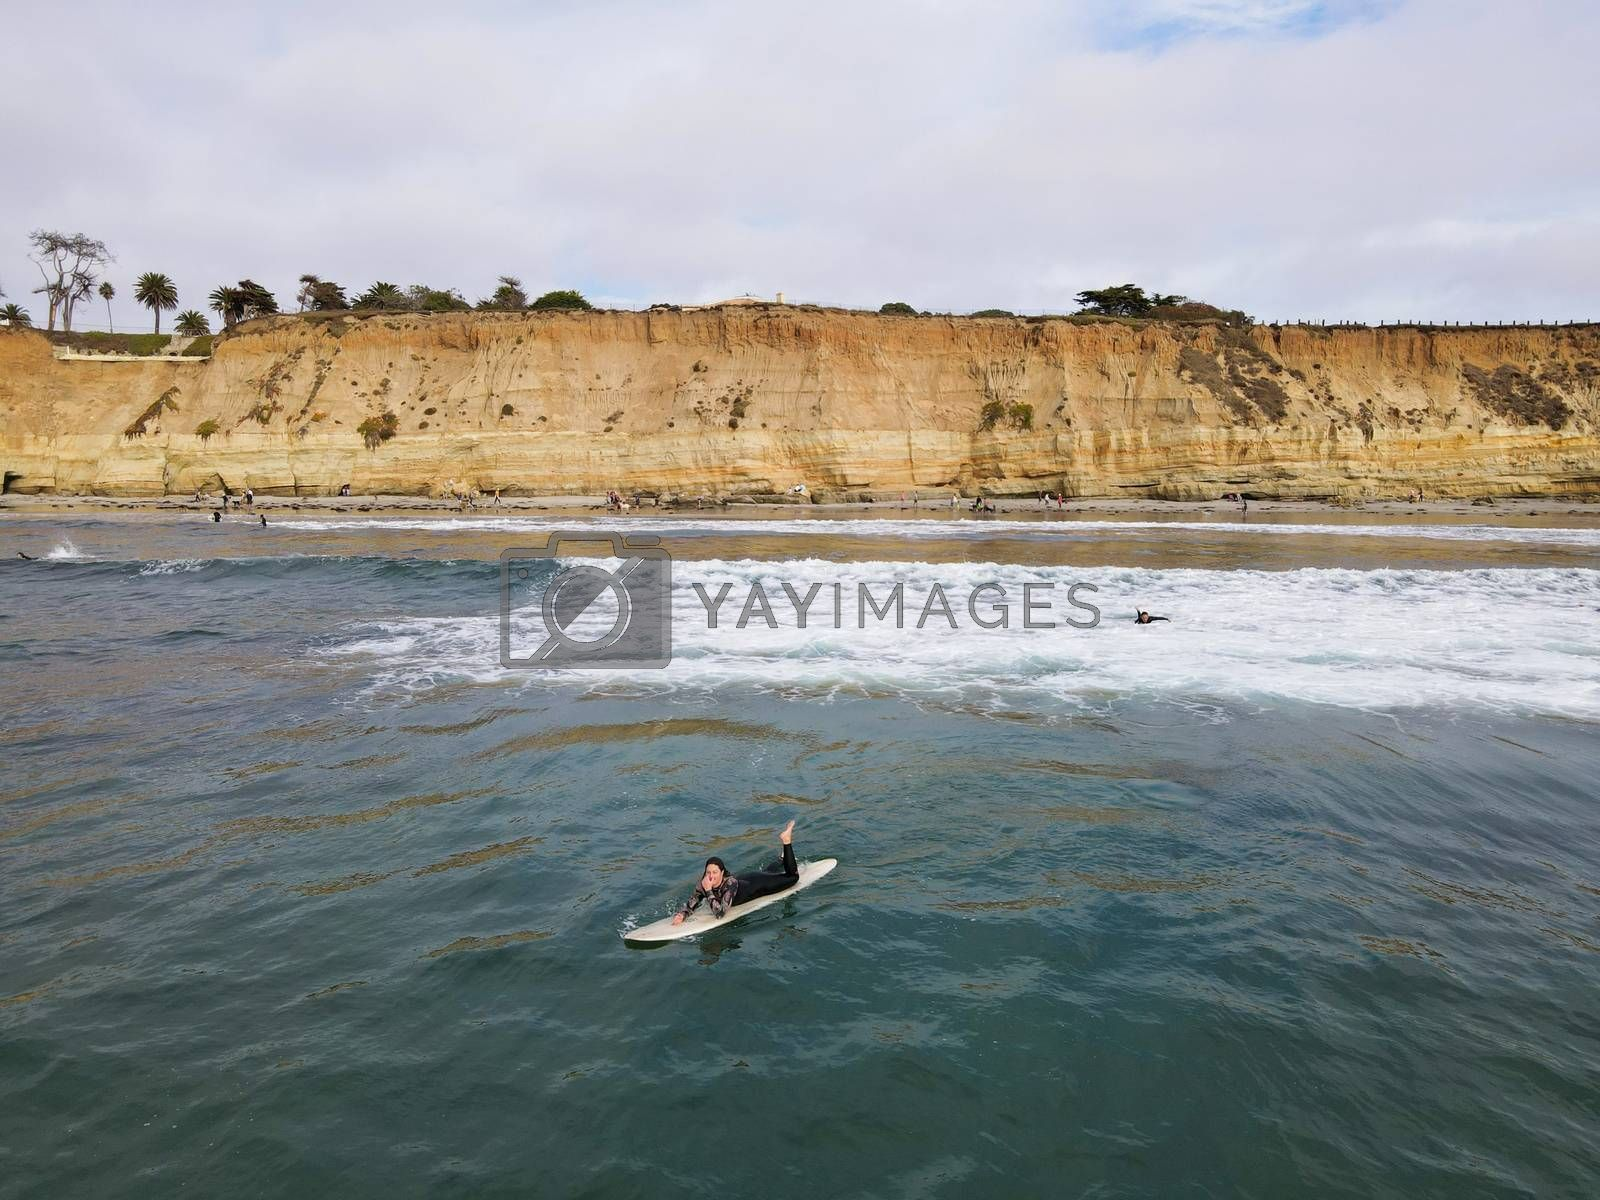 Surfers with wet suit paddling and enjoying the big waves. San Diego, California, USA. November 20th, 2020